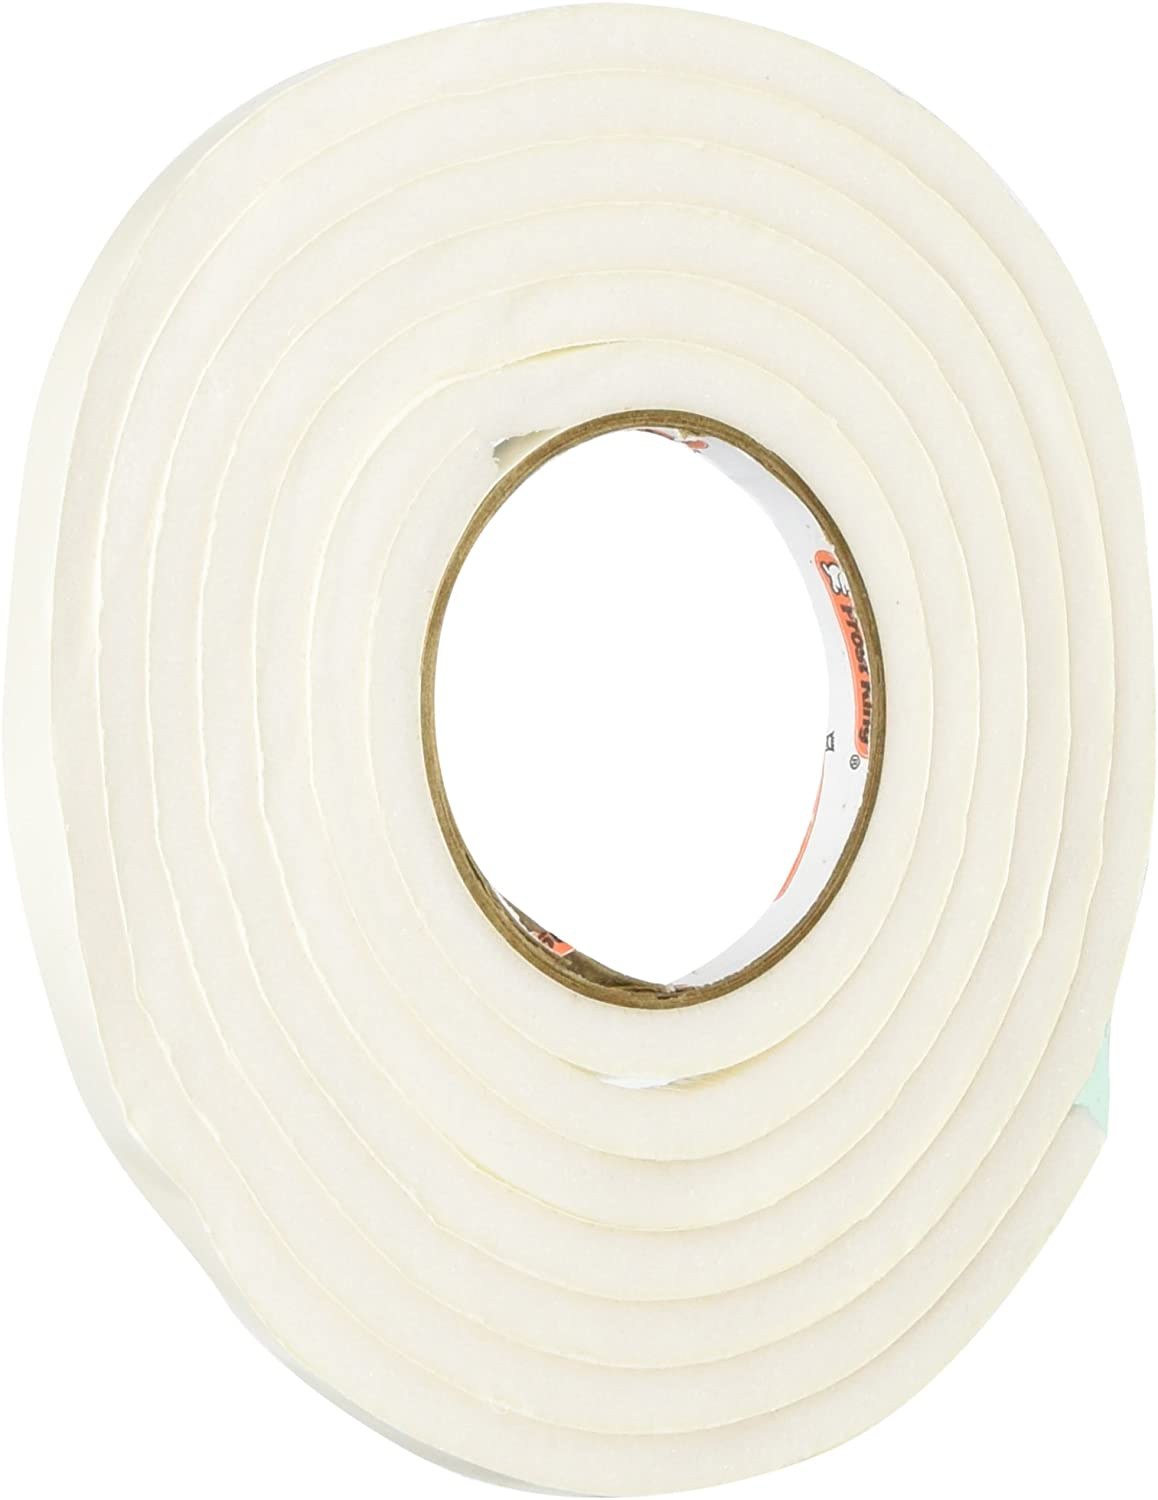 Frost King R538WH Rubber Foam Tape 3 16in OFFer 8in Thick Wide free shipping x 1 5